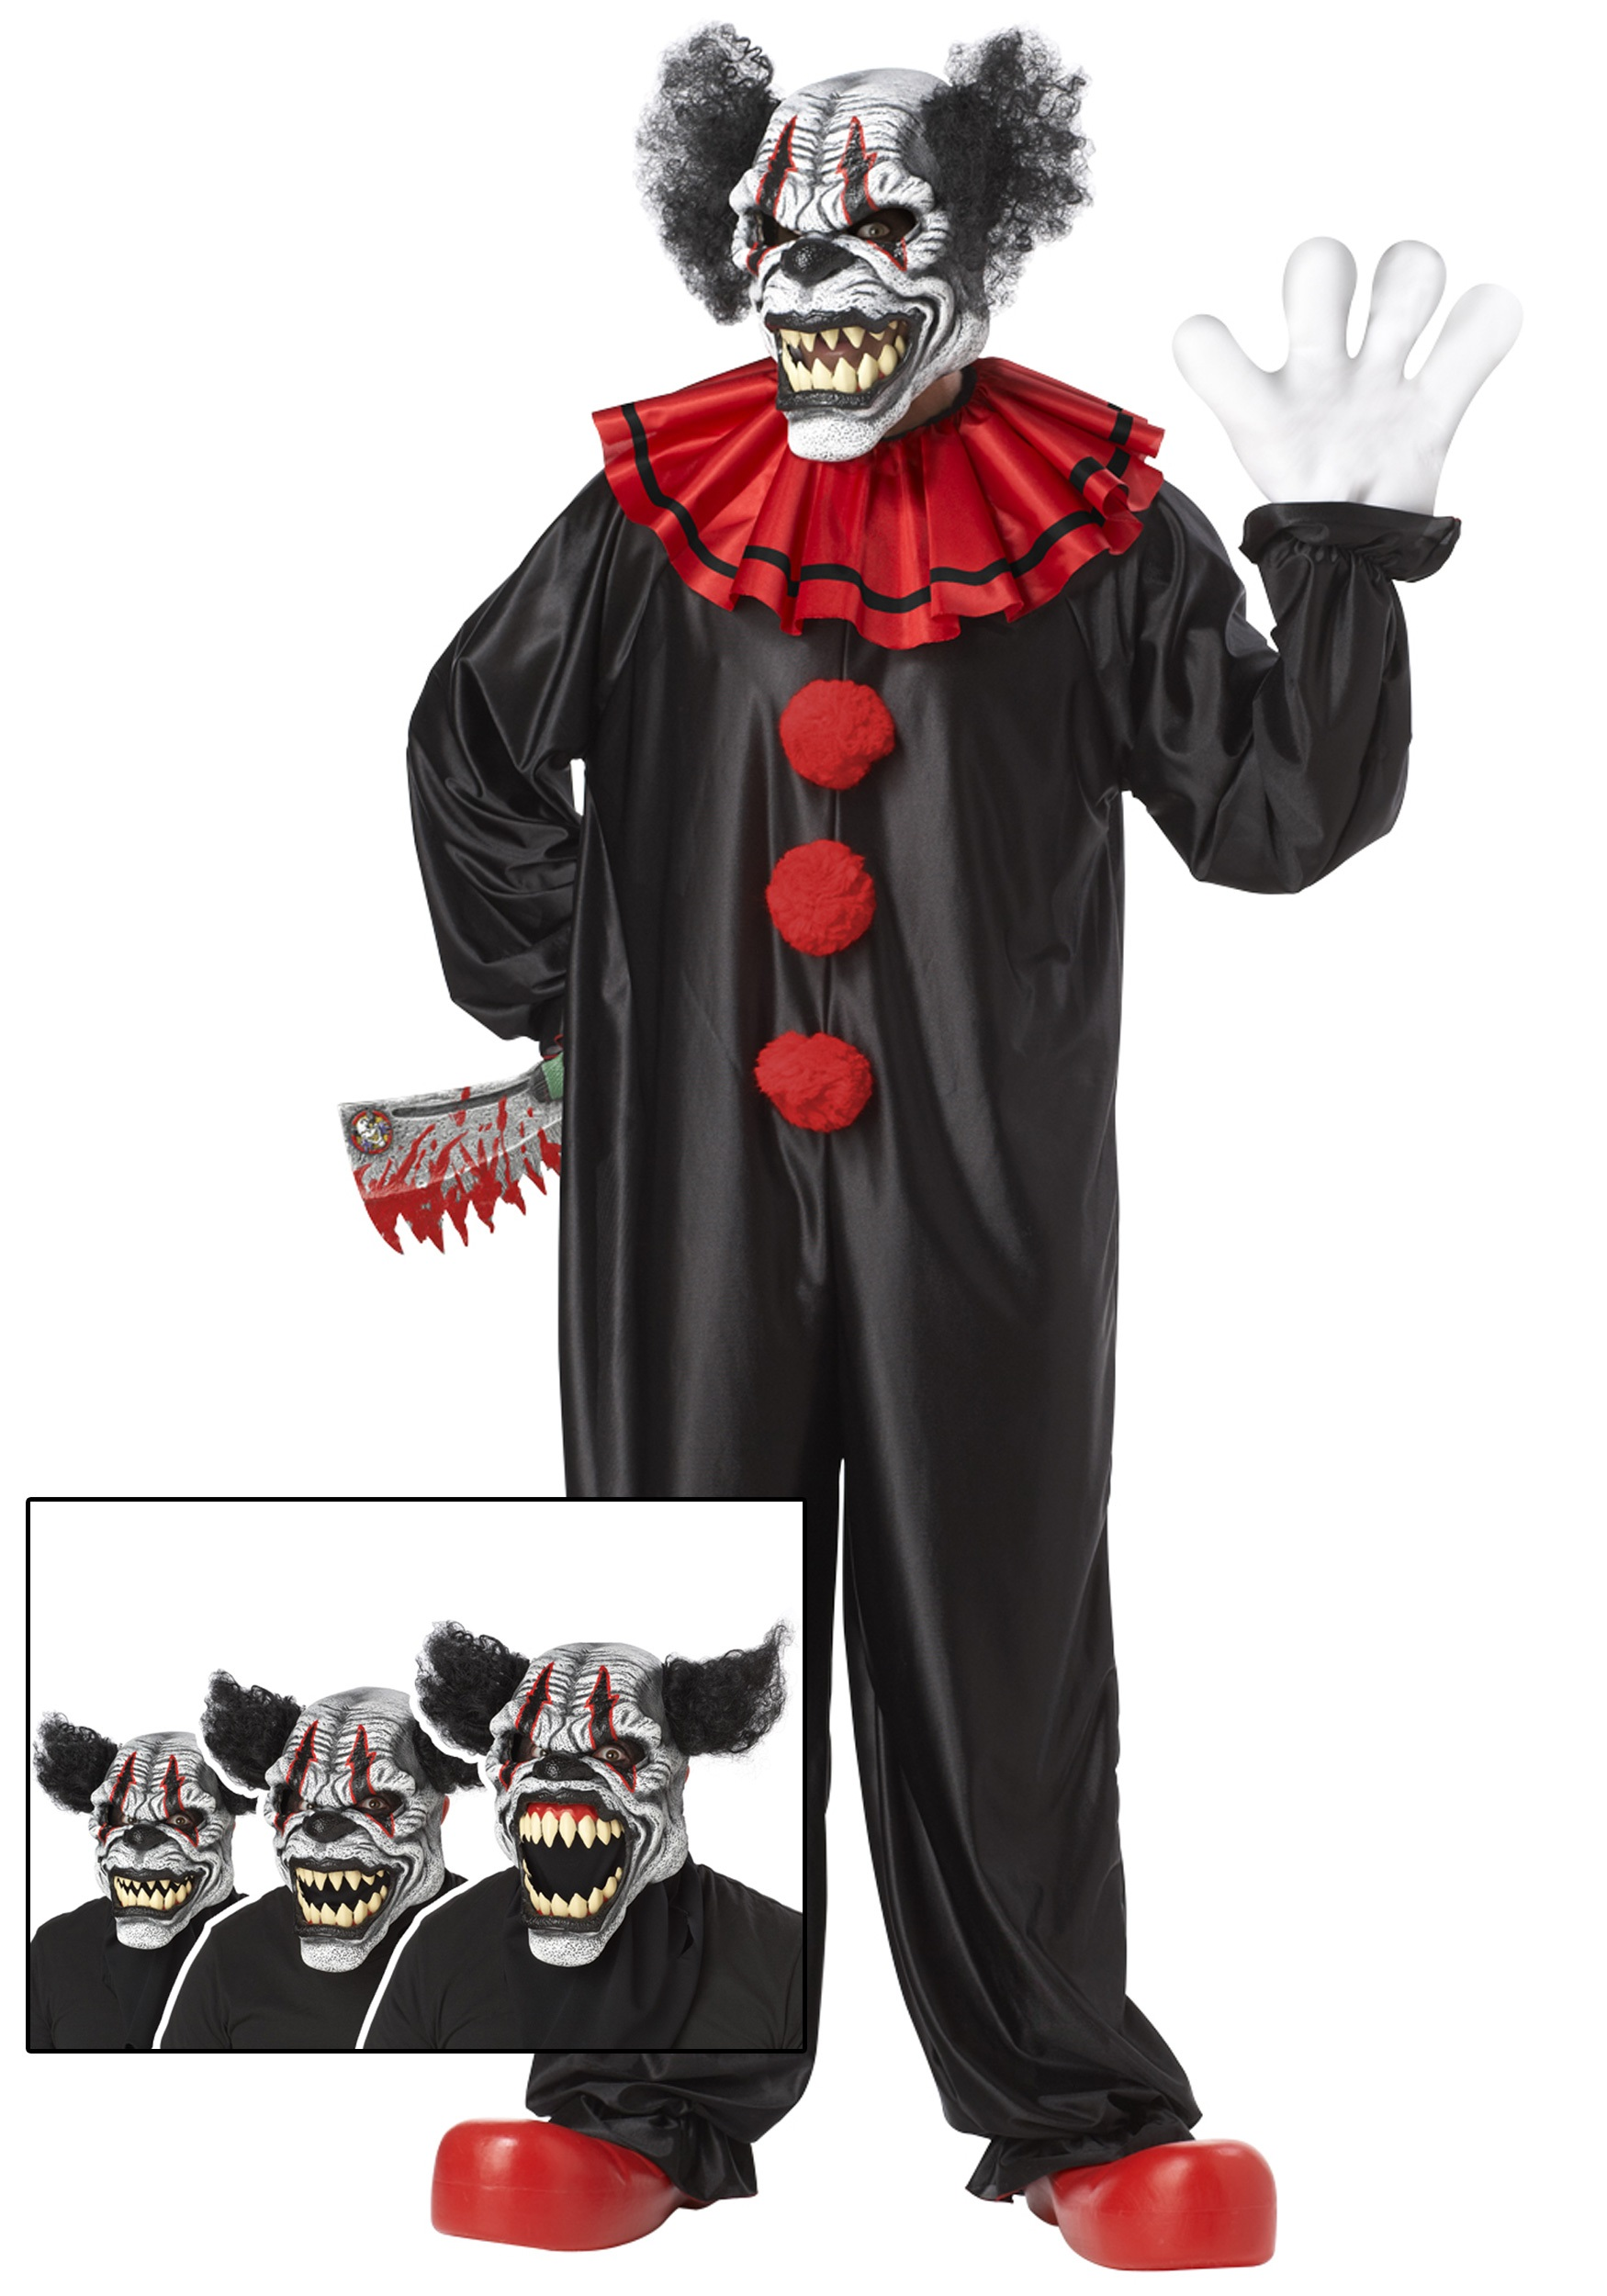 Evil Laughing Clown Costume Scary Adult Halloween Costume Ideas